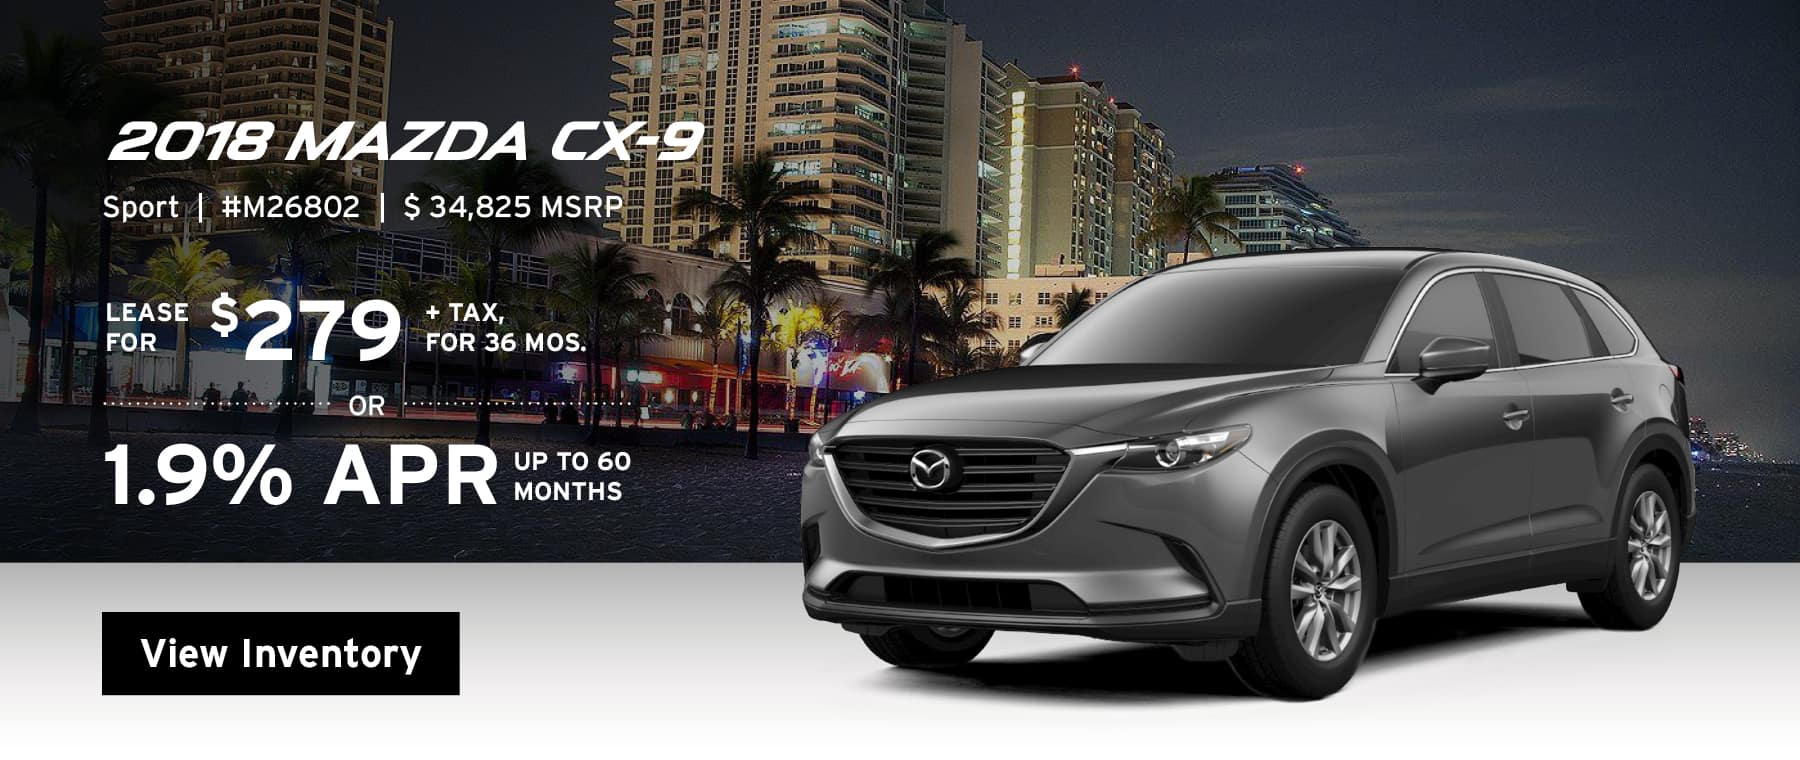 Lease the 2018 Mazda CX-9 Sport for $279, plus tax for 36 months, or 1.9% APR up to 60 months.